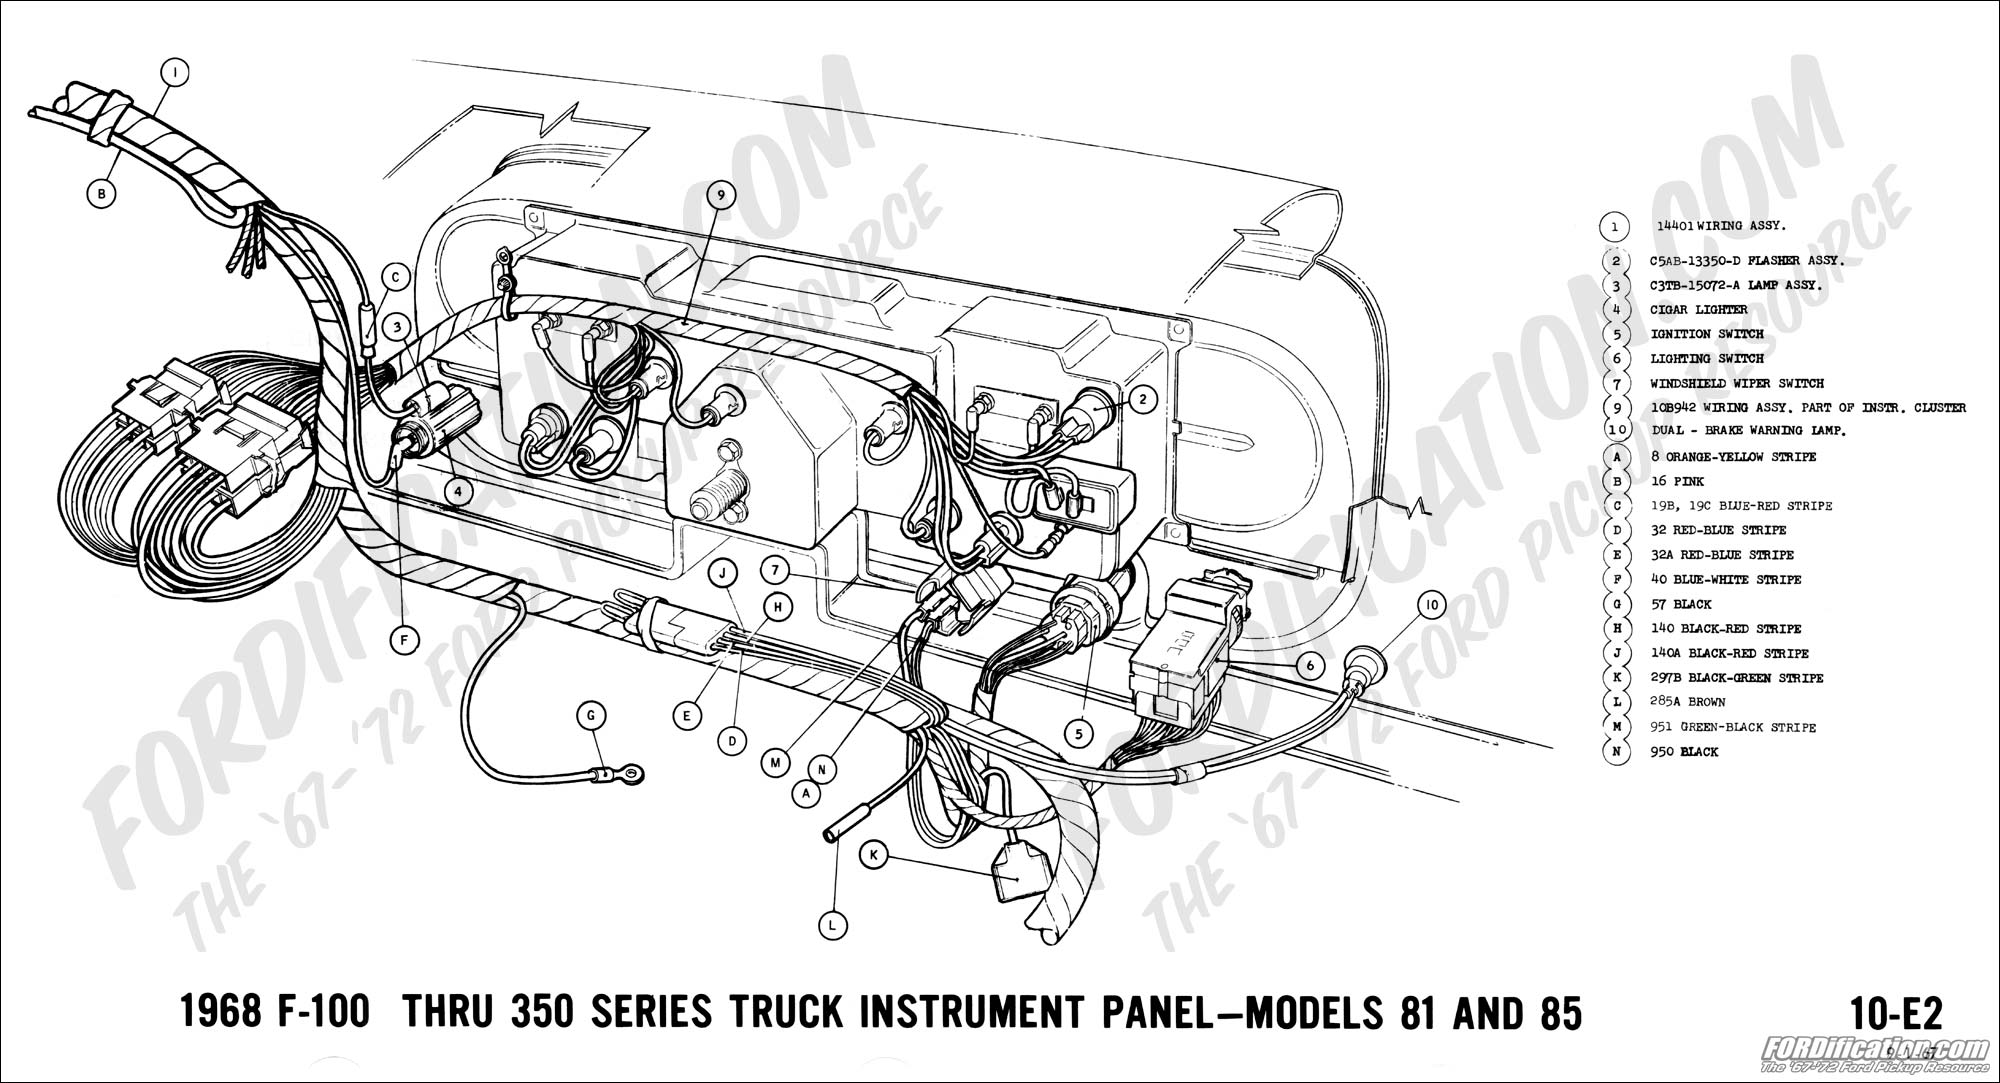 1971 Camaro Coil Wiring Diagram Library 1968 Mustang F 100 Thru 350 Instrument Panel